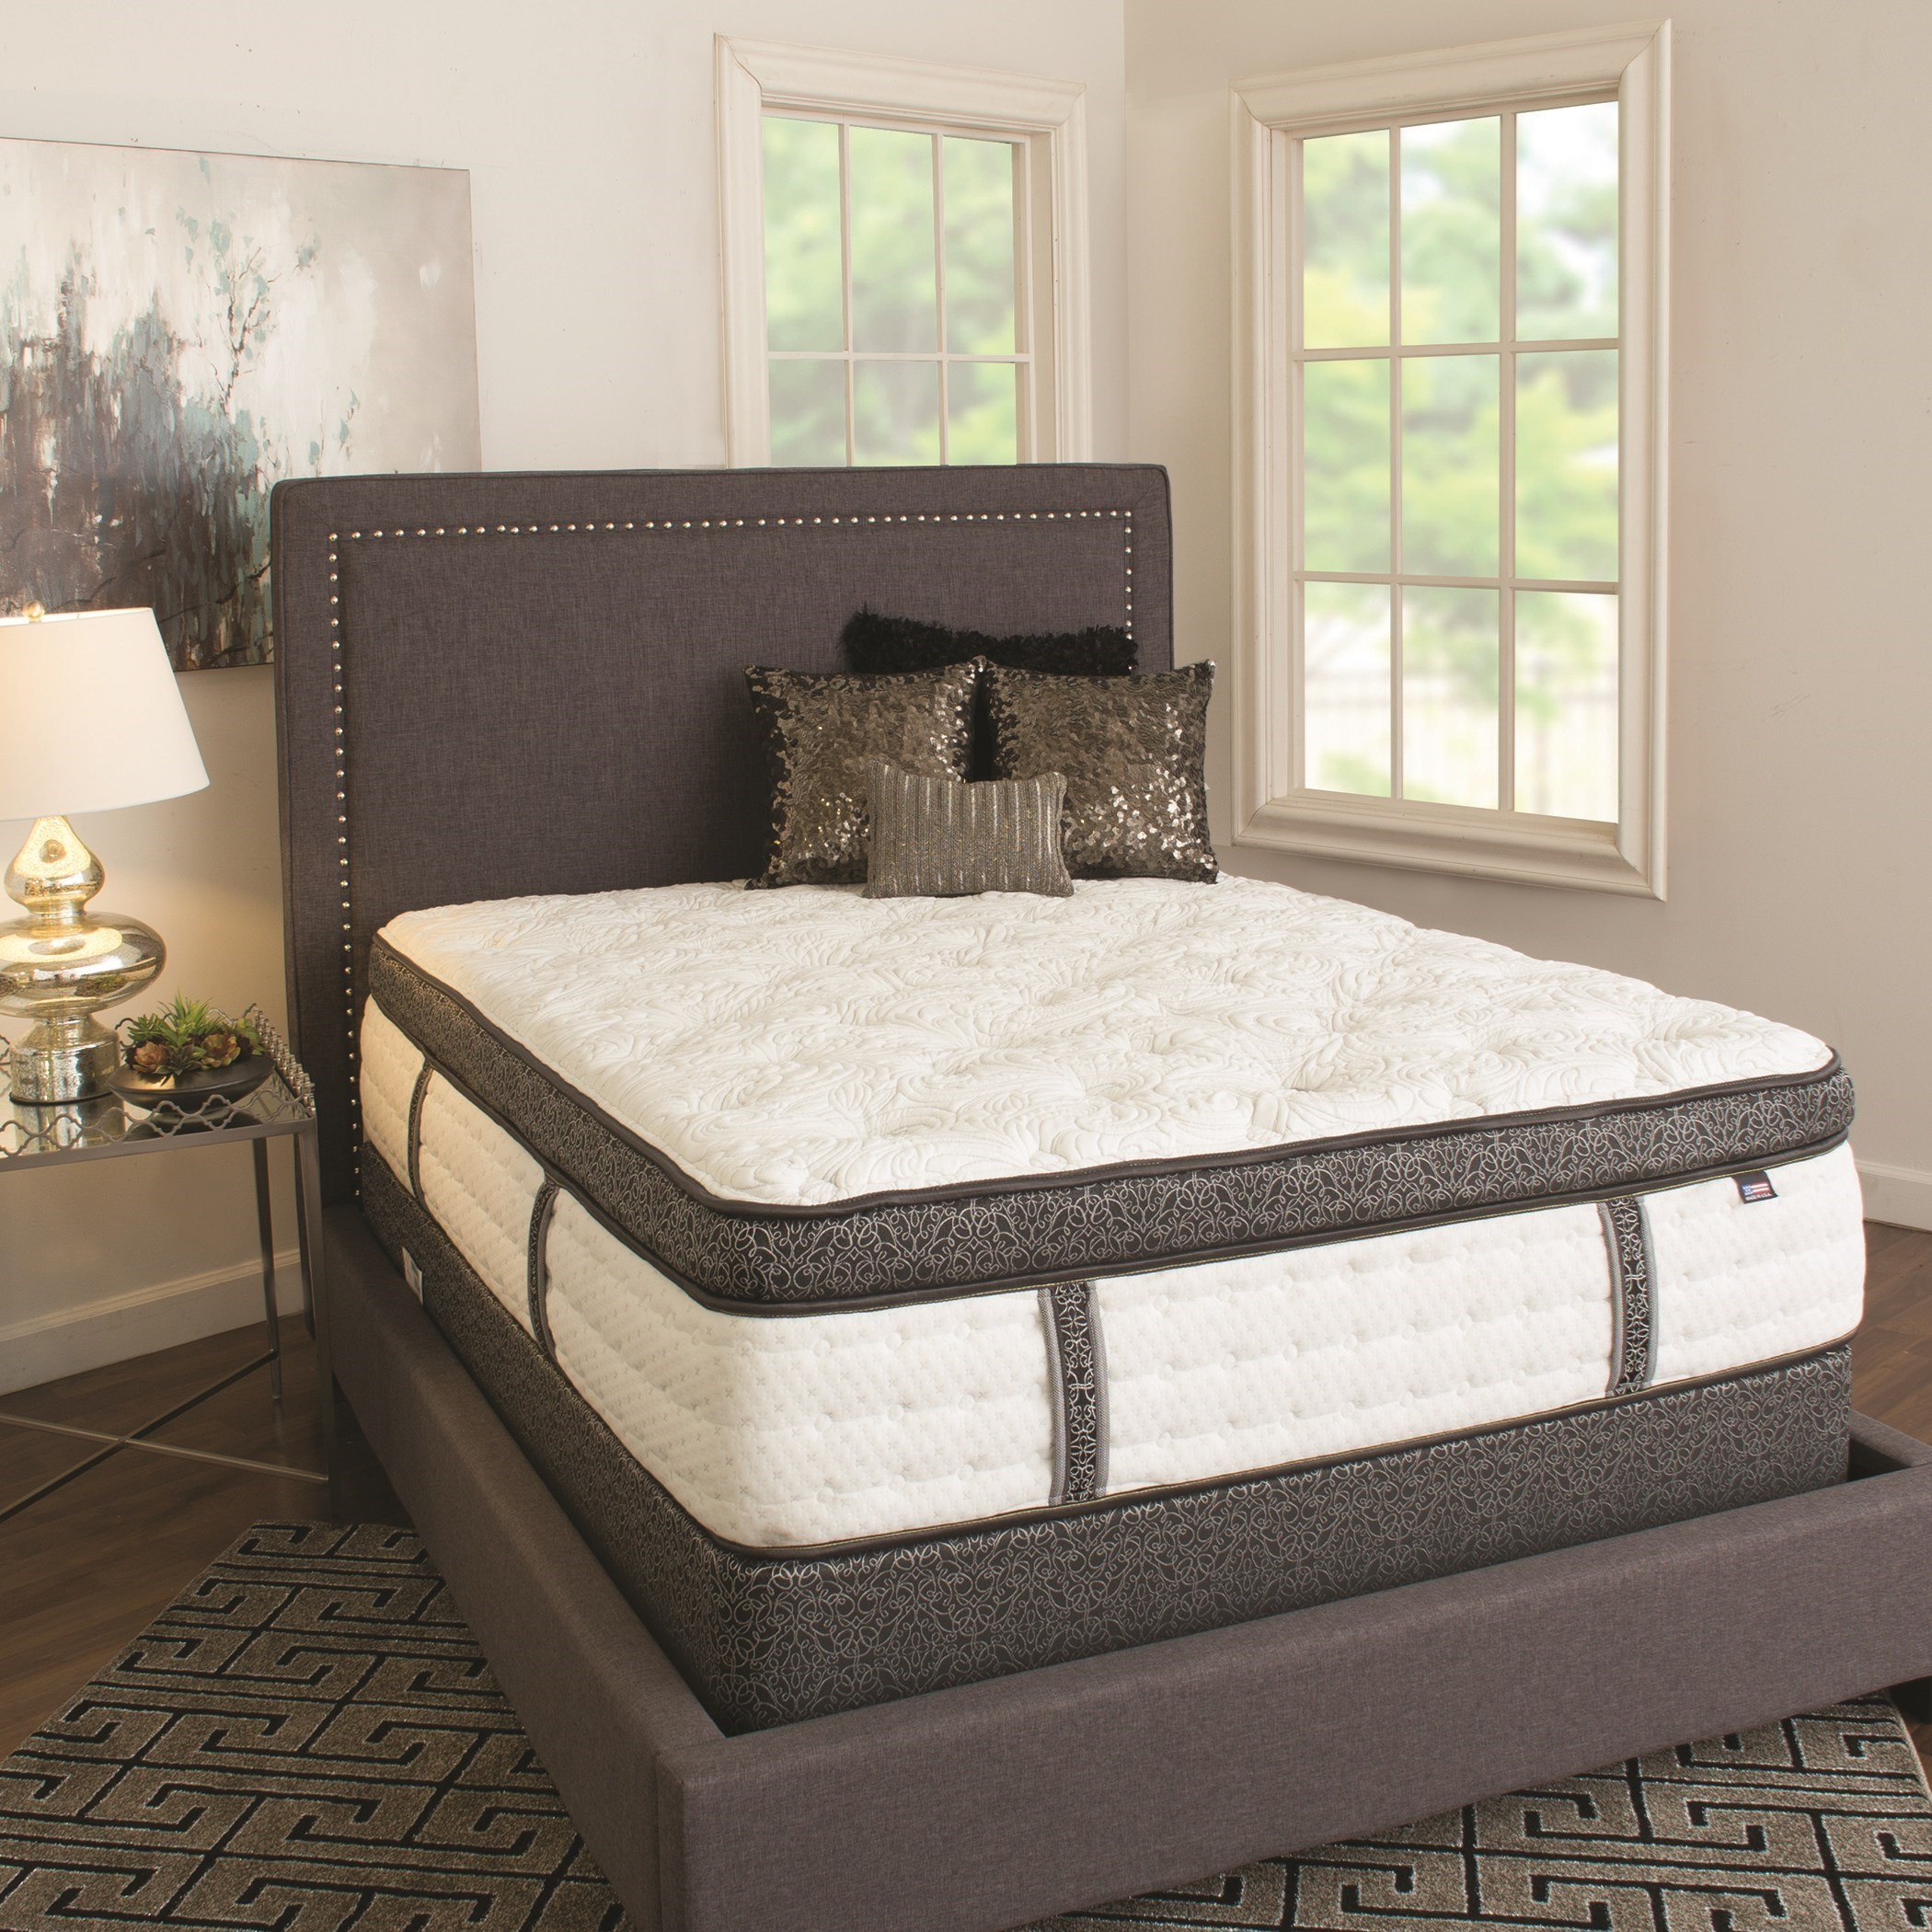 Smothery Rapedic Darvin Elite Luxury Collection Queen Elite Luxury Firm Mattress Rapedic Mattress Sets Orland Il Rapedic Darvin Furniture Orland Park Il 60462 Darvin Furniture Orland Park Black Friday houzz-03 Darvin Furniture Orland Park